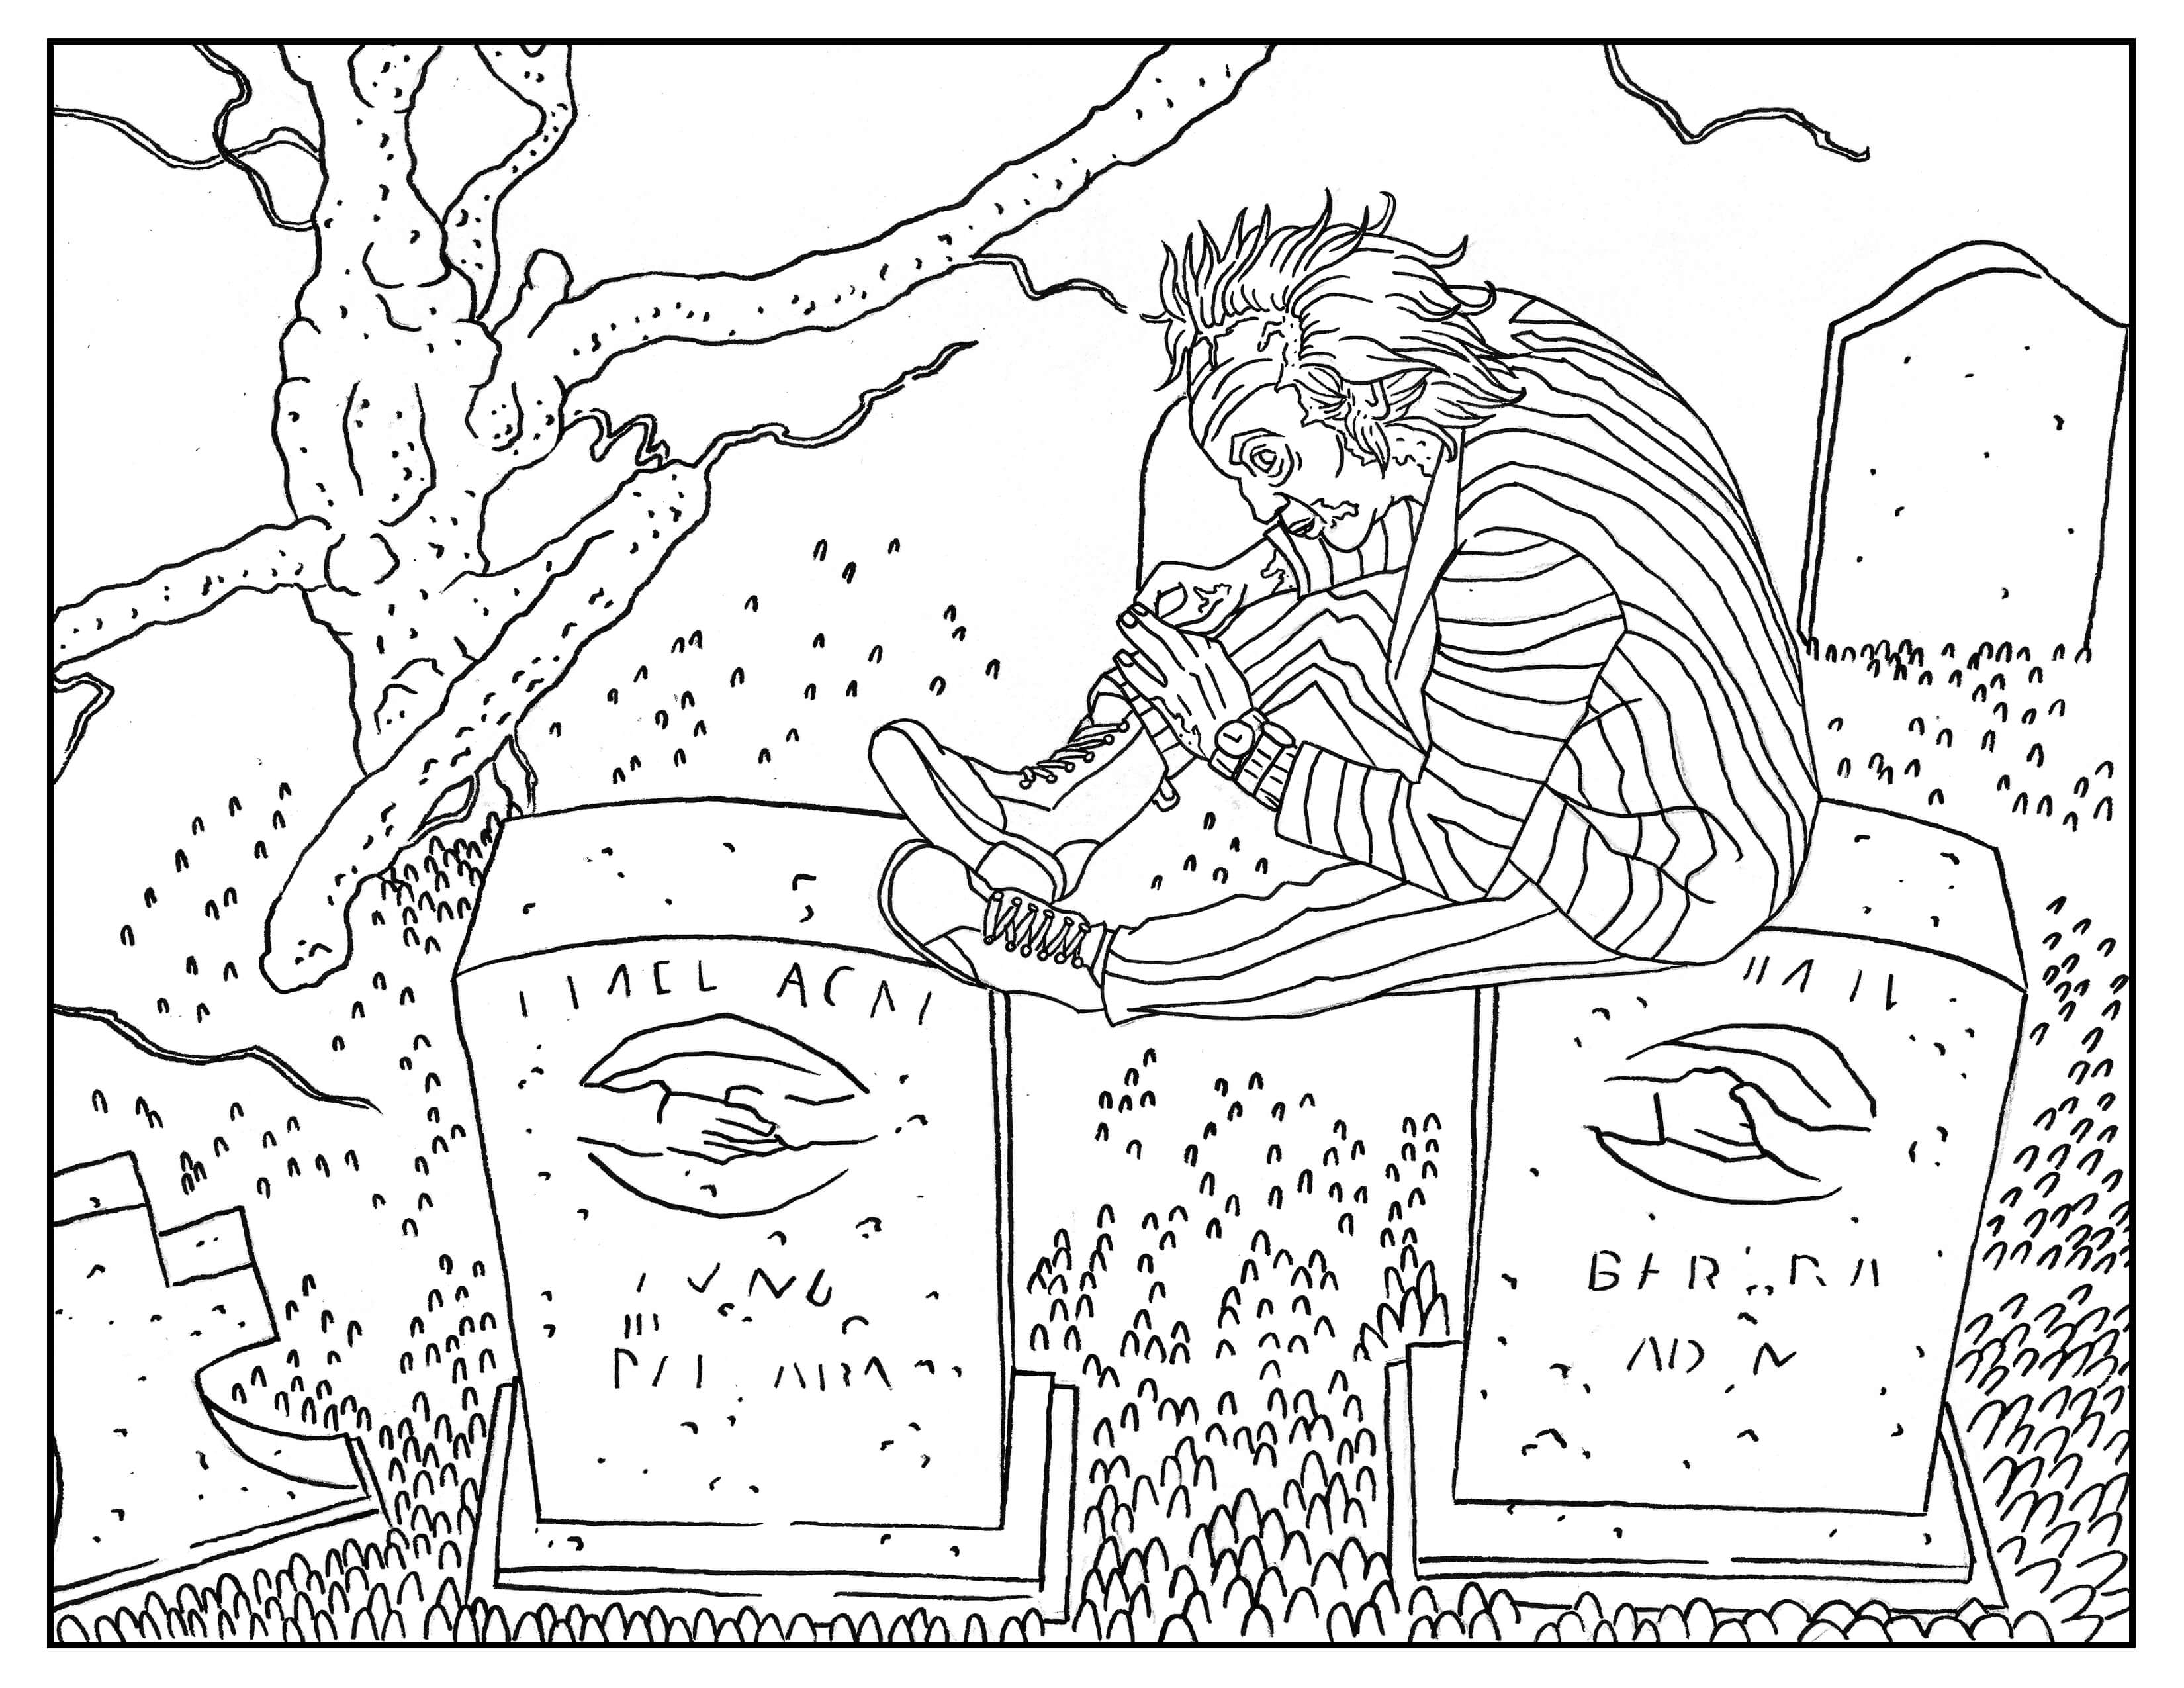 beetlejuice coloring pages Beetlejuice in a a cemetery   Halloween Adult Coloring Pages beetlejuice coloring pages